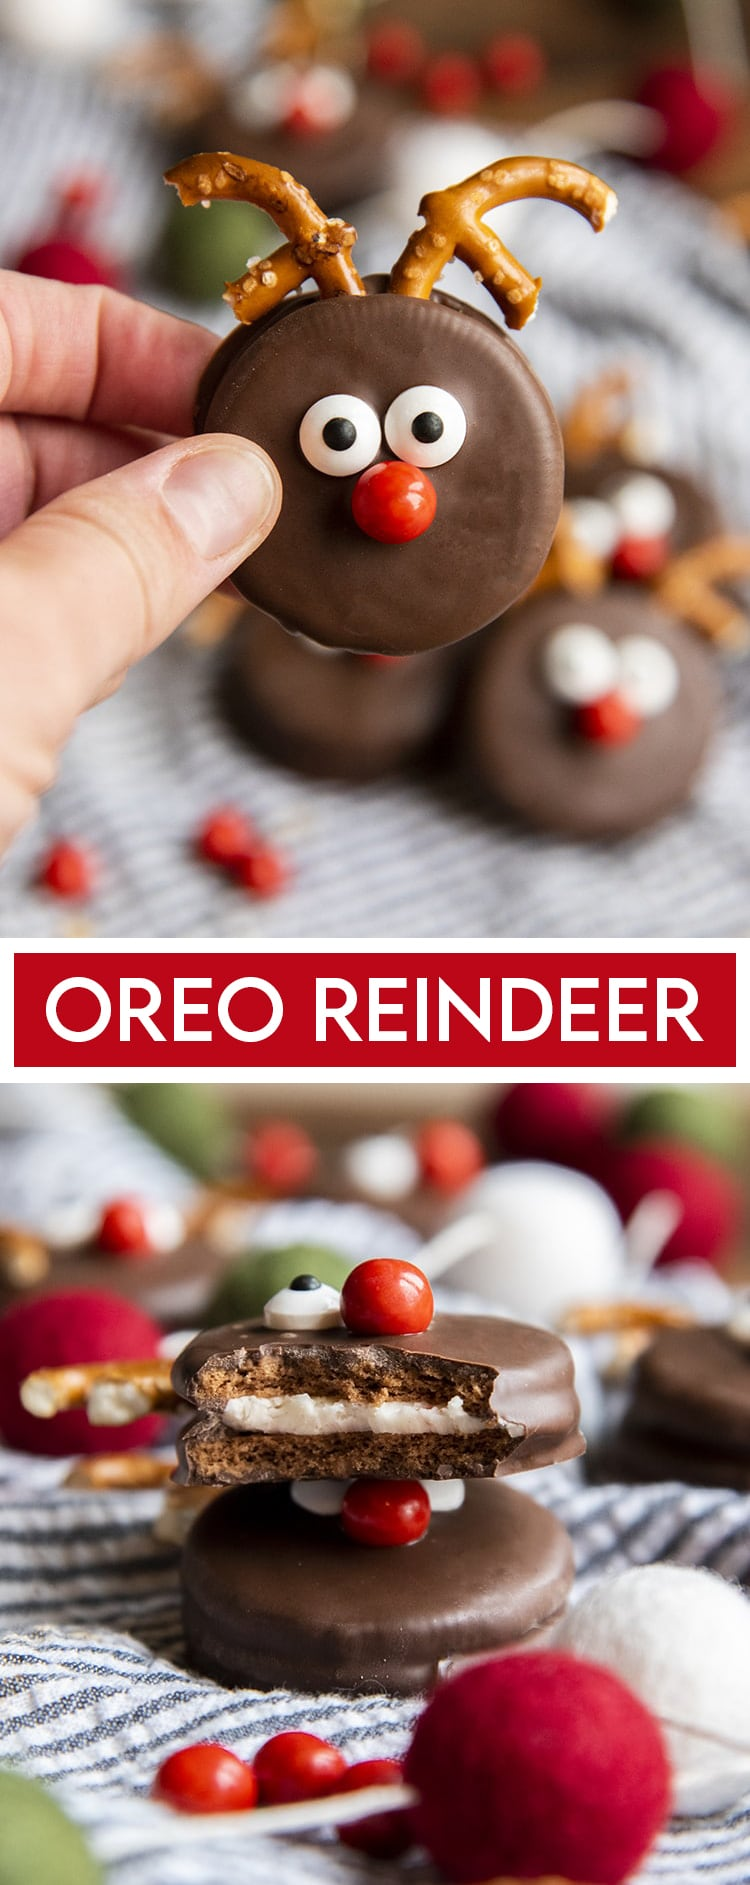 An Oreo dipped in chocolate and decorated to look like a reindeer with pretzel pieces for antlers, candy eye balls and a red sixlet nose. It'ss being held up by a hand with a text overlay at the bottom for pinterest. Then a photo below of two Oreo Reindeer stacked, and the top is bitten to show the oreo under the chocolate.